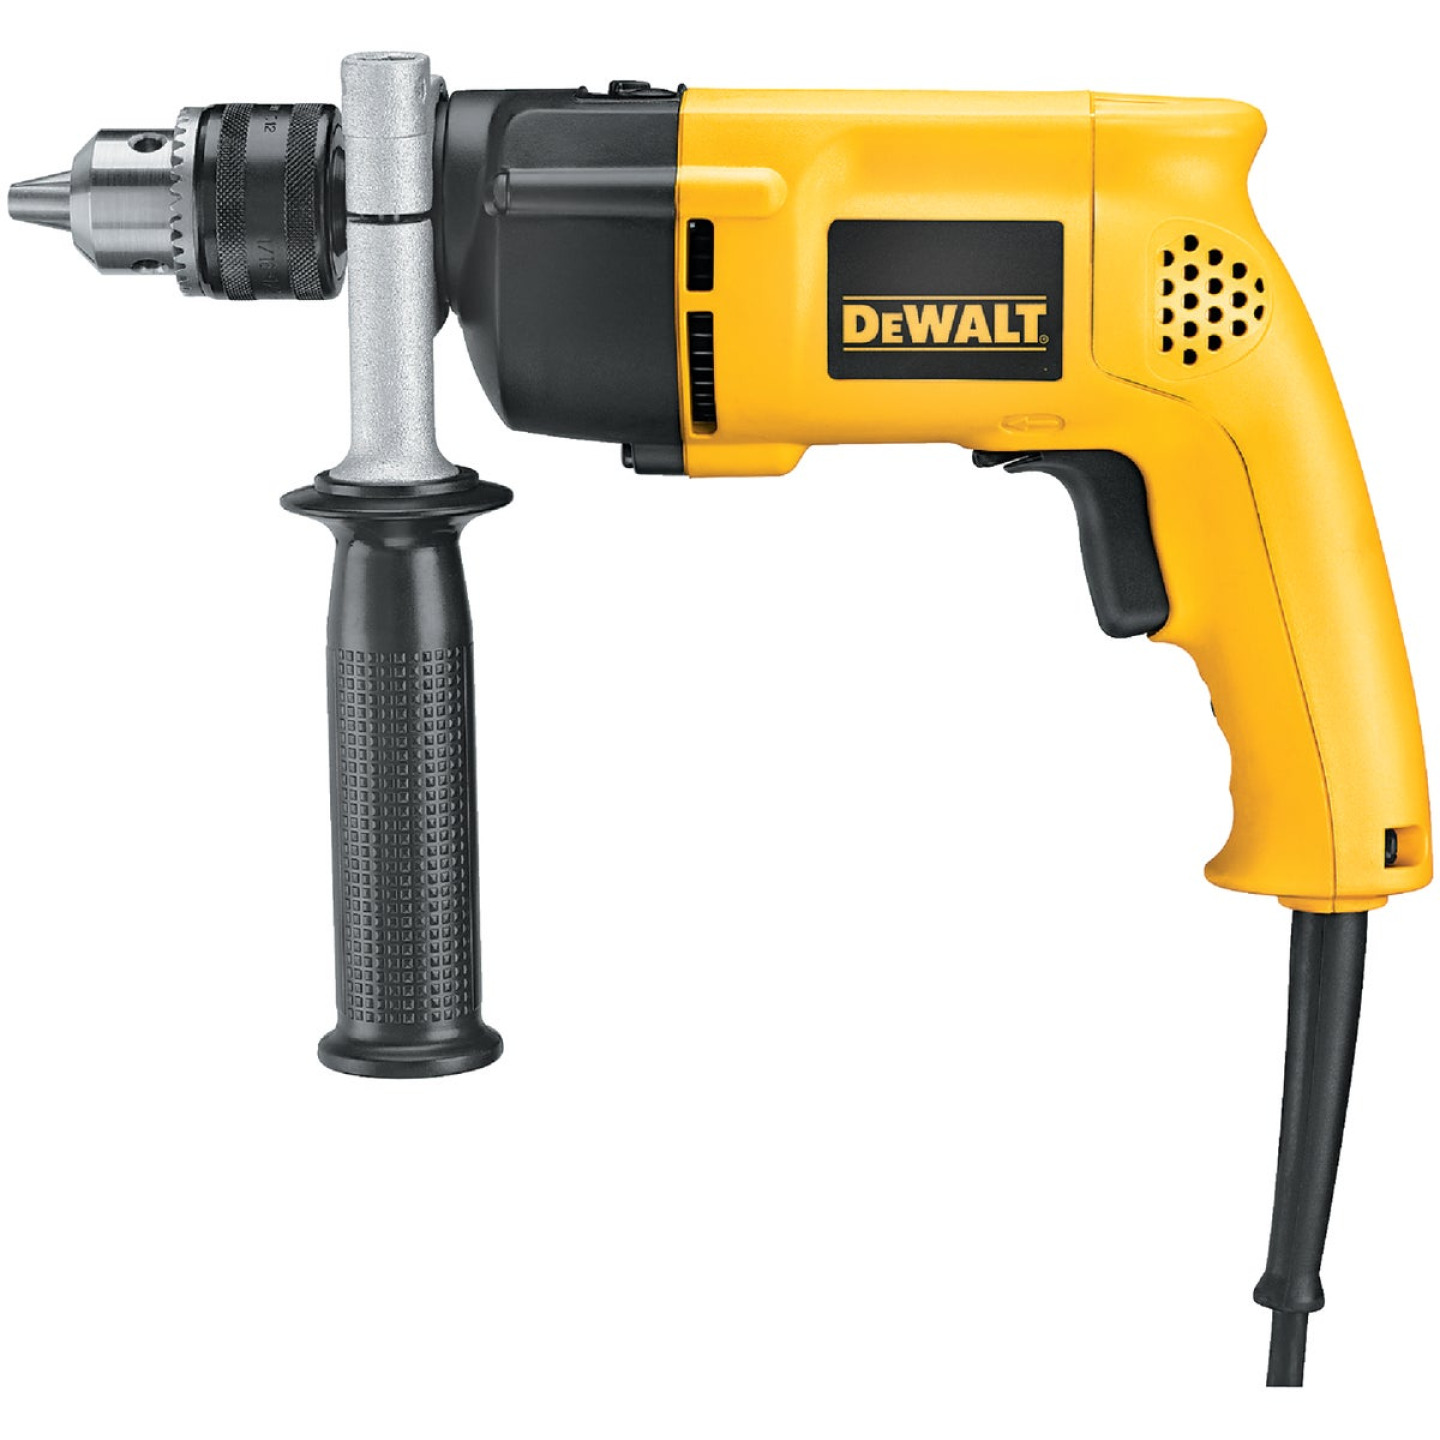 DeWalt 1/2 In. Keyed 8.5-Amp VSR Single-Speed Electric Hammer Drill Image 2